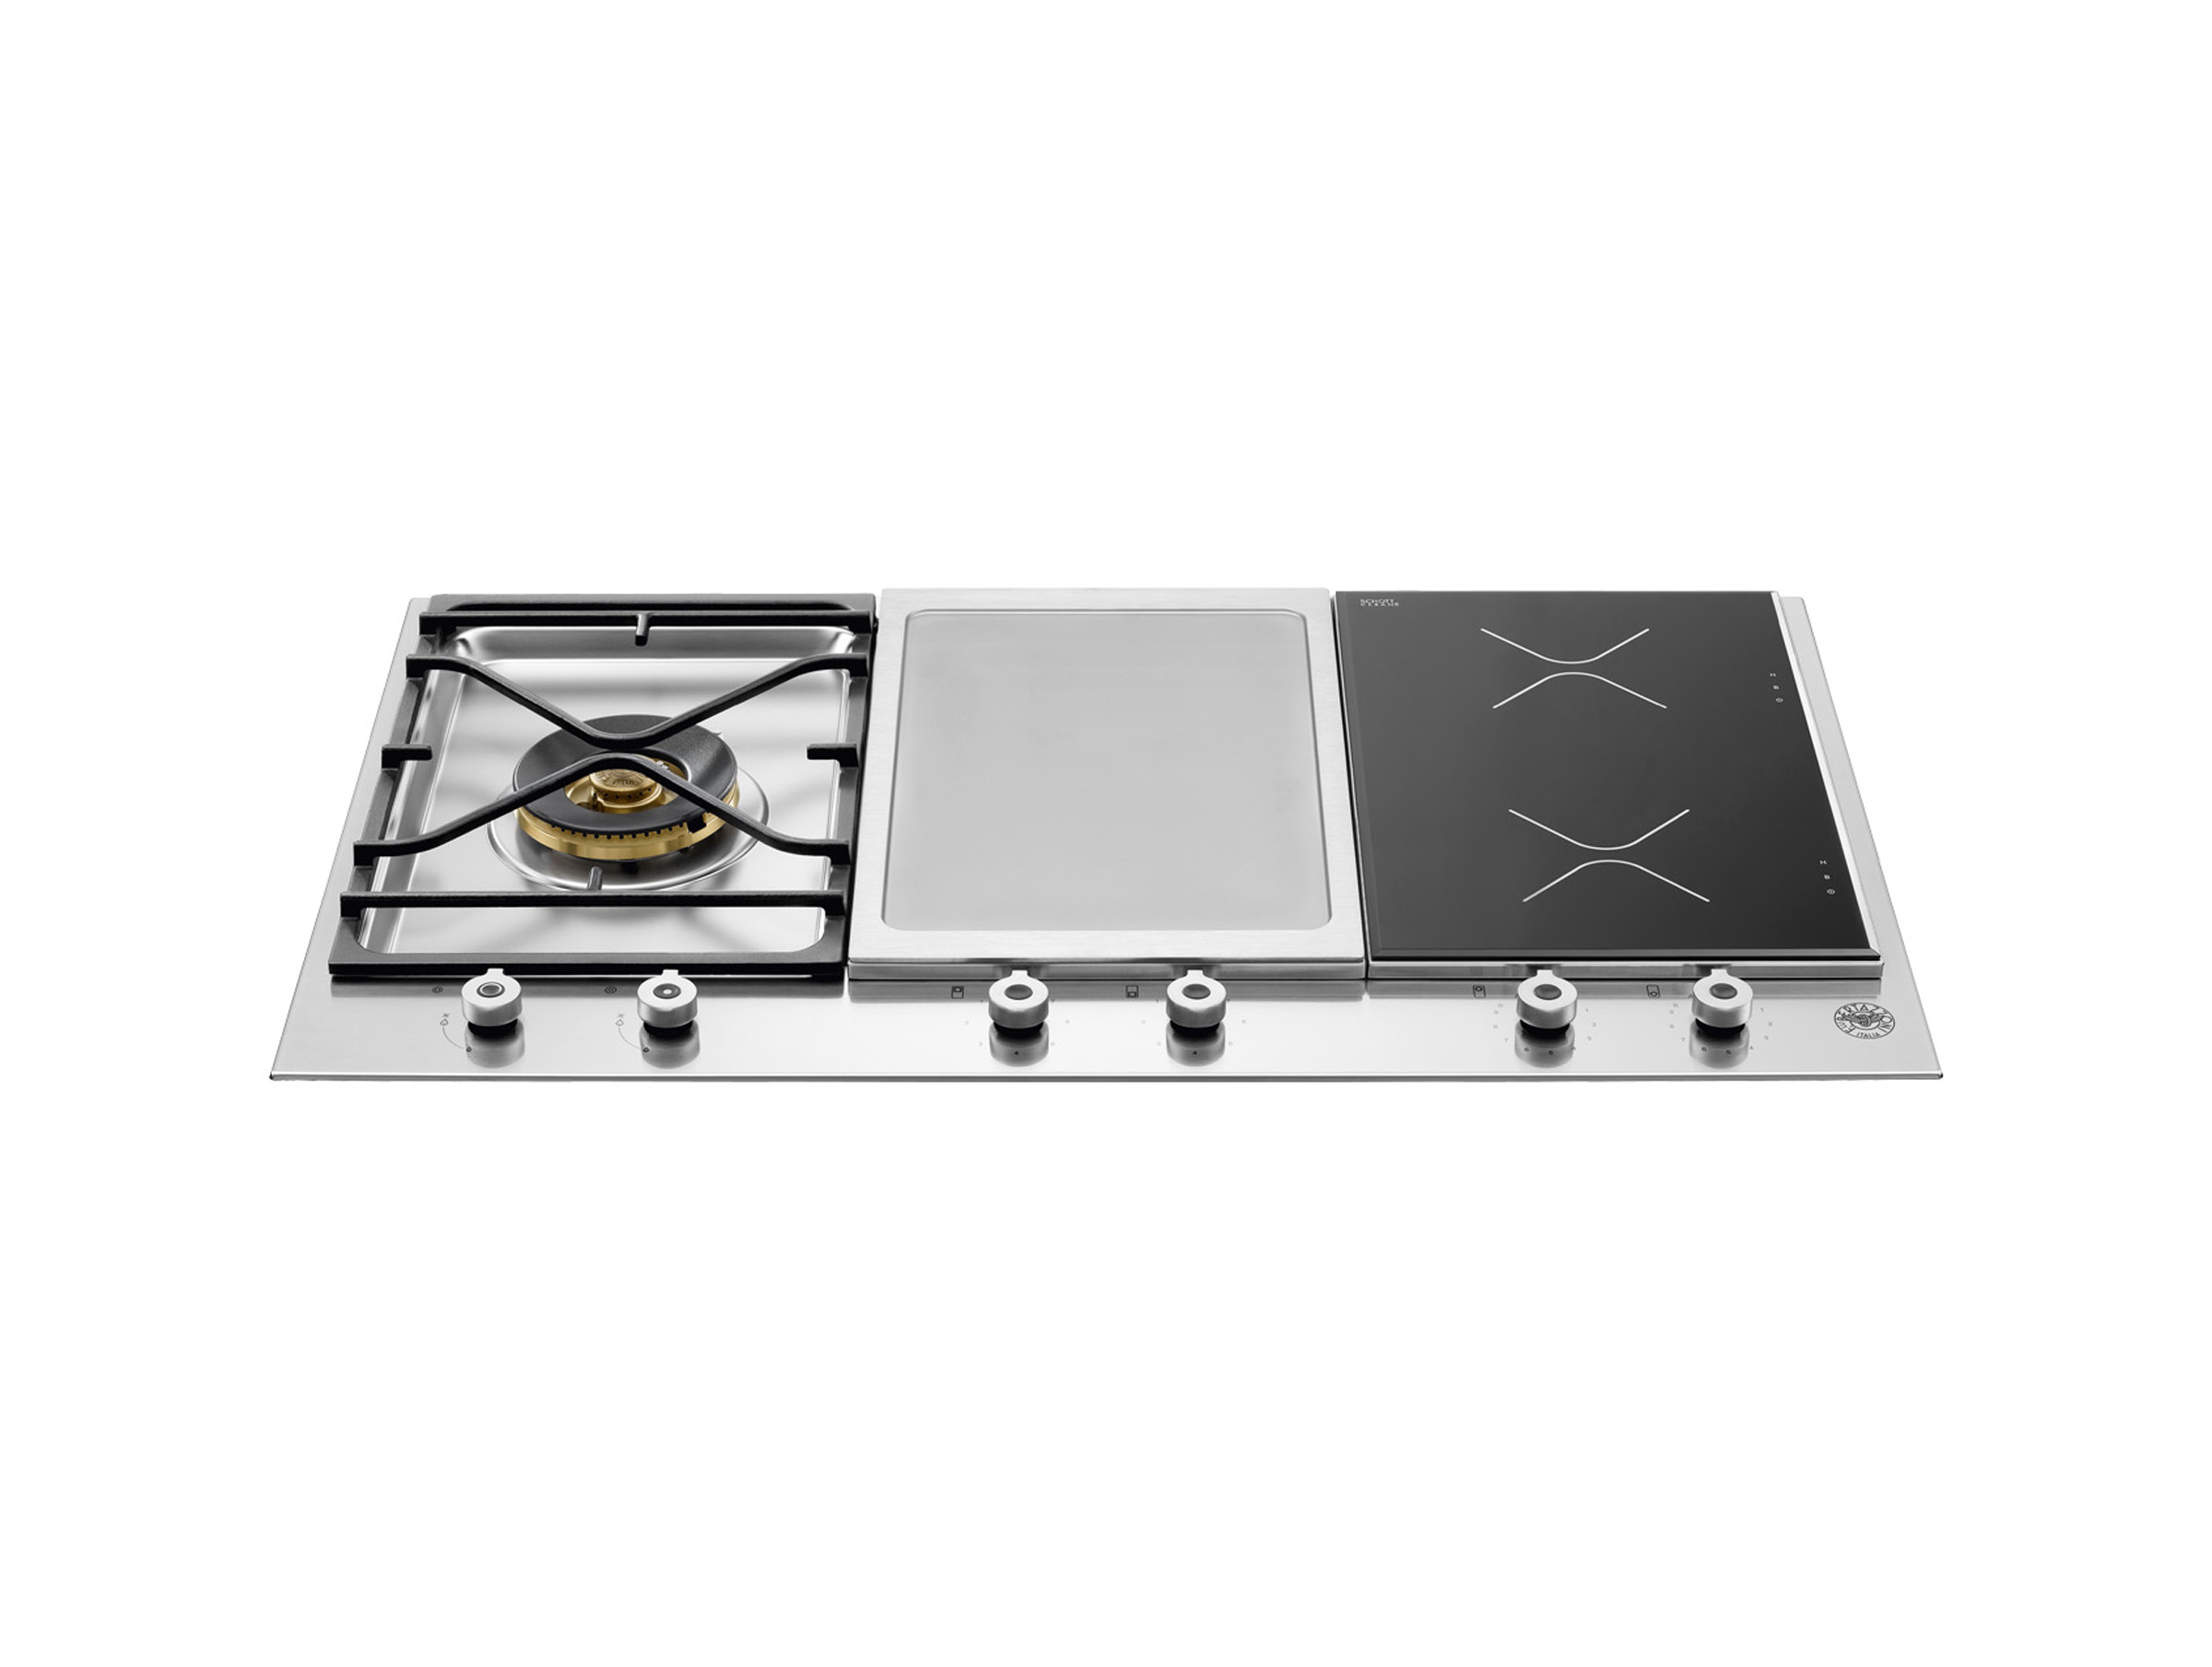 36 Segmented Cooktop 1 Burner 2 Induction Zones And Griddle Wiring Kitchen Bertazzoni Stainless